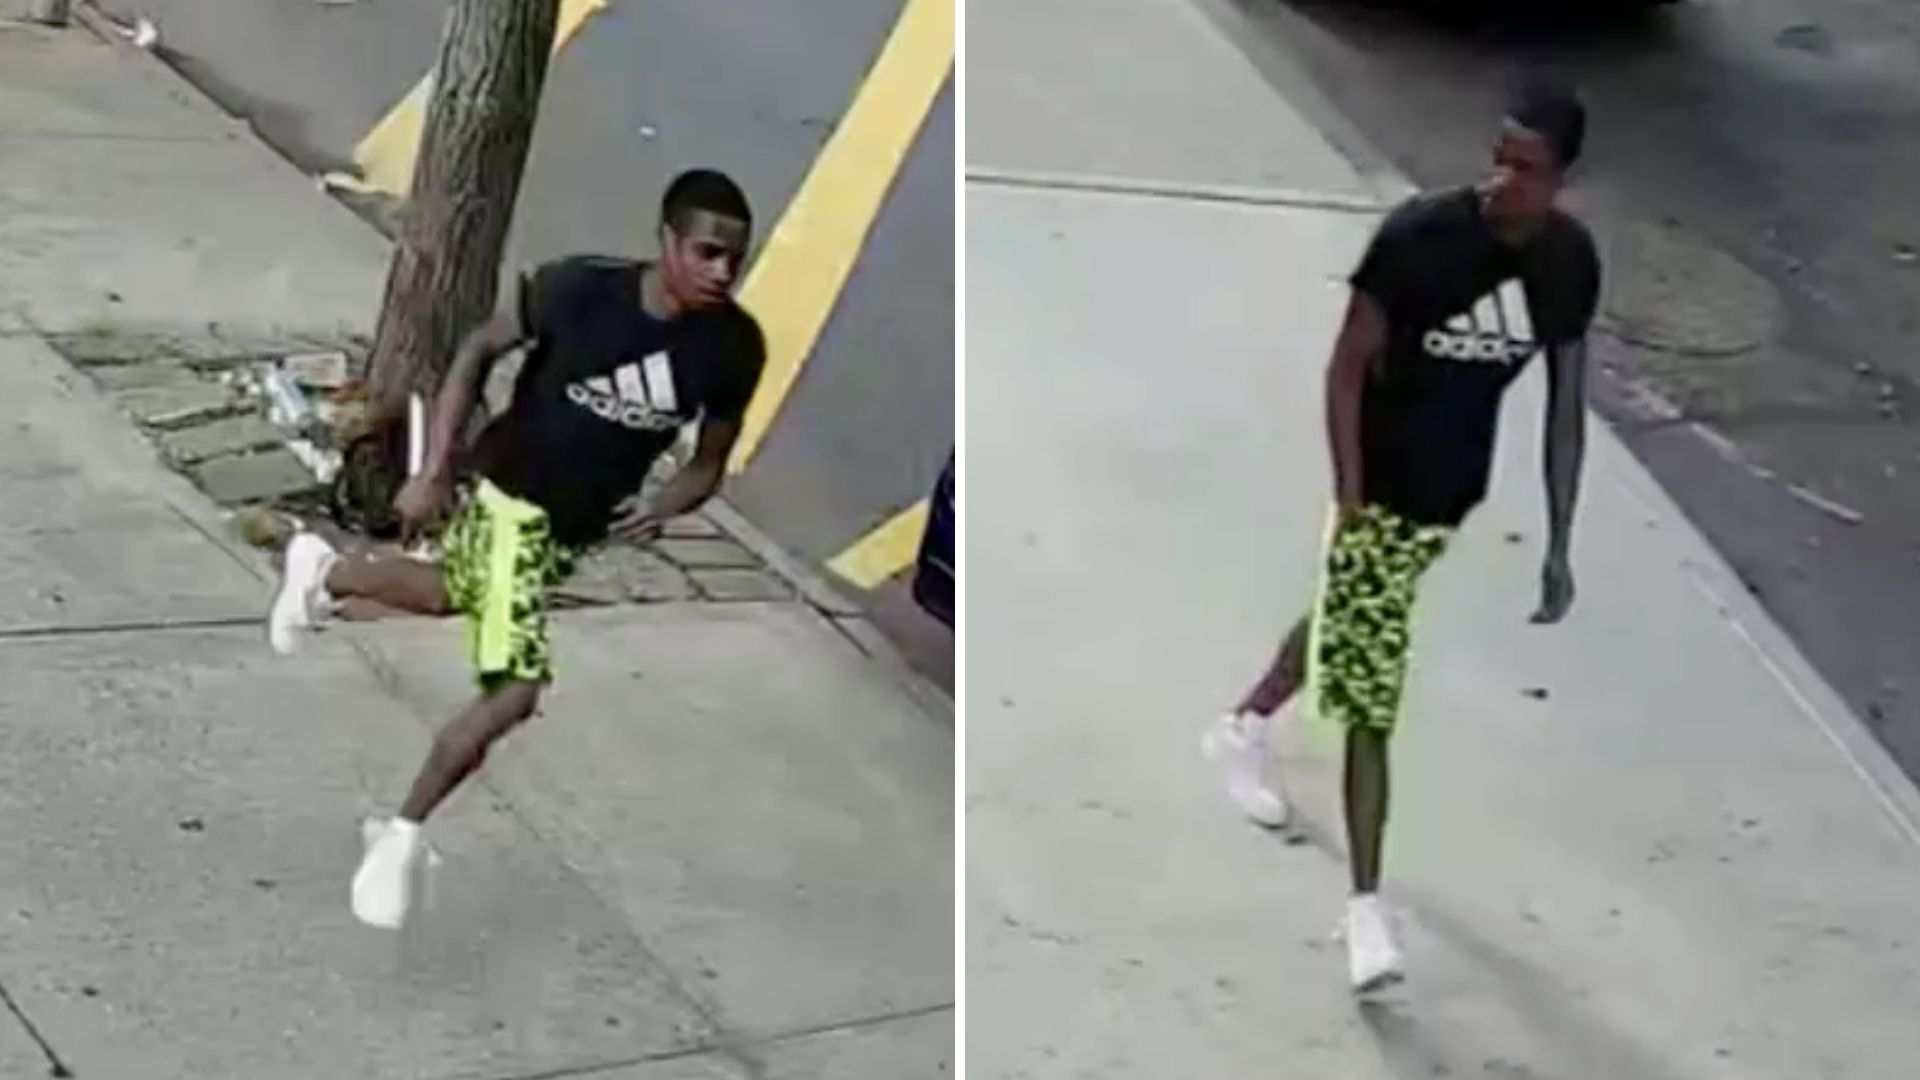 Man accused in Bronx stabbing attack